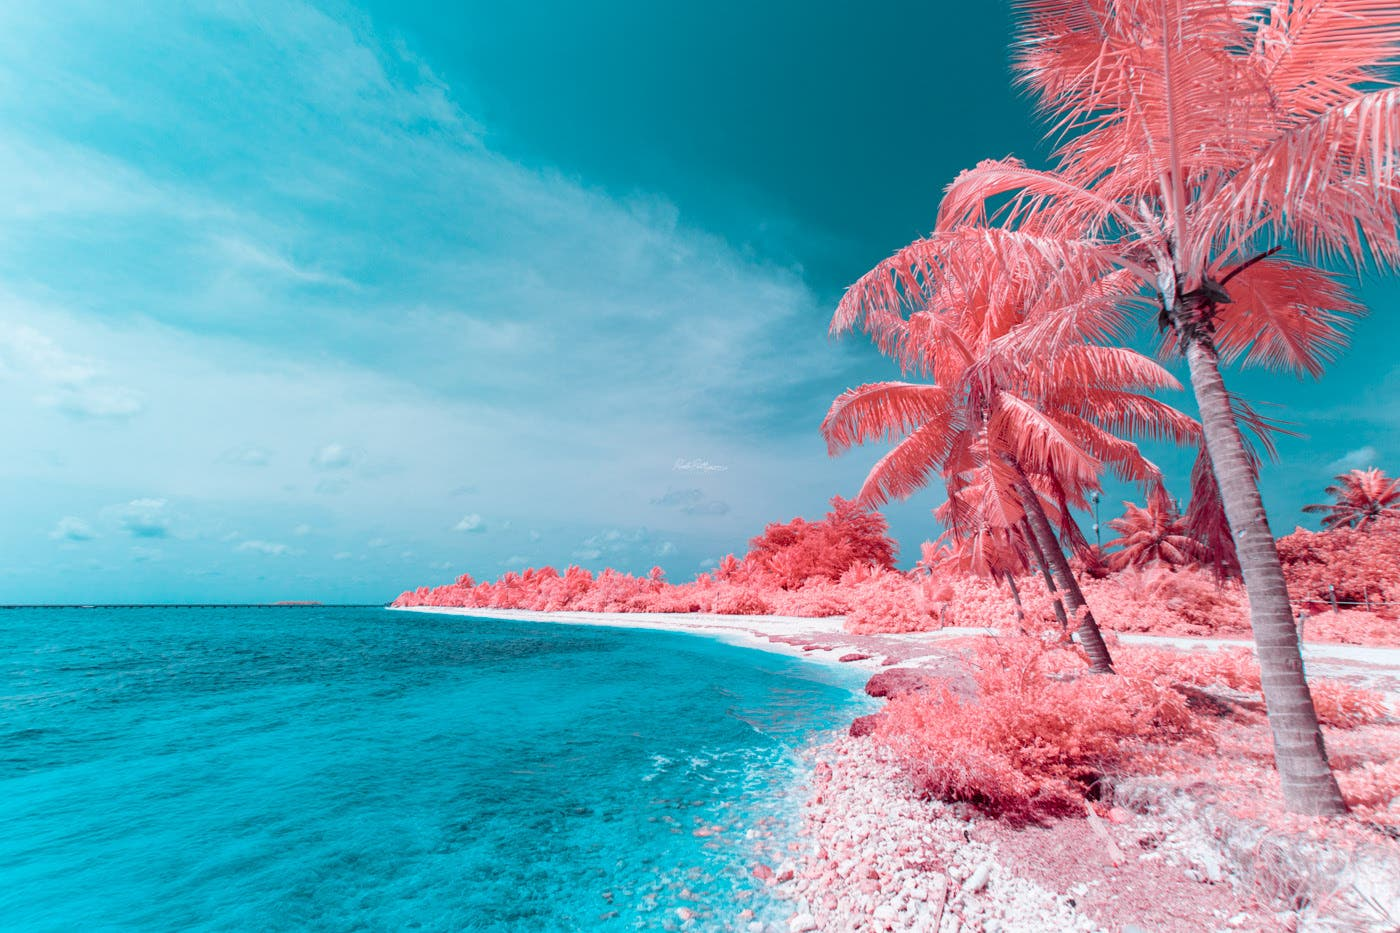 Paolo Pettigiani Reveals More of the Maldives in Surreal Infrared